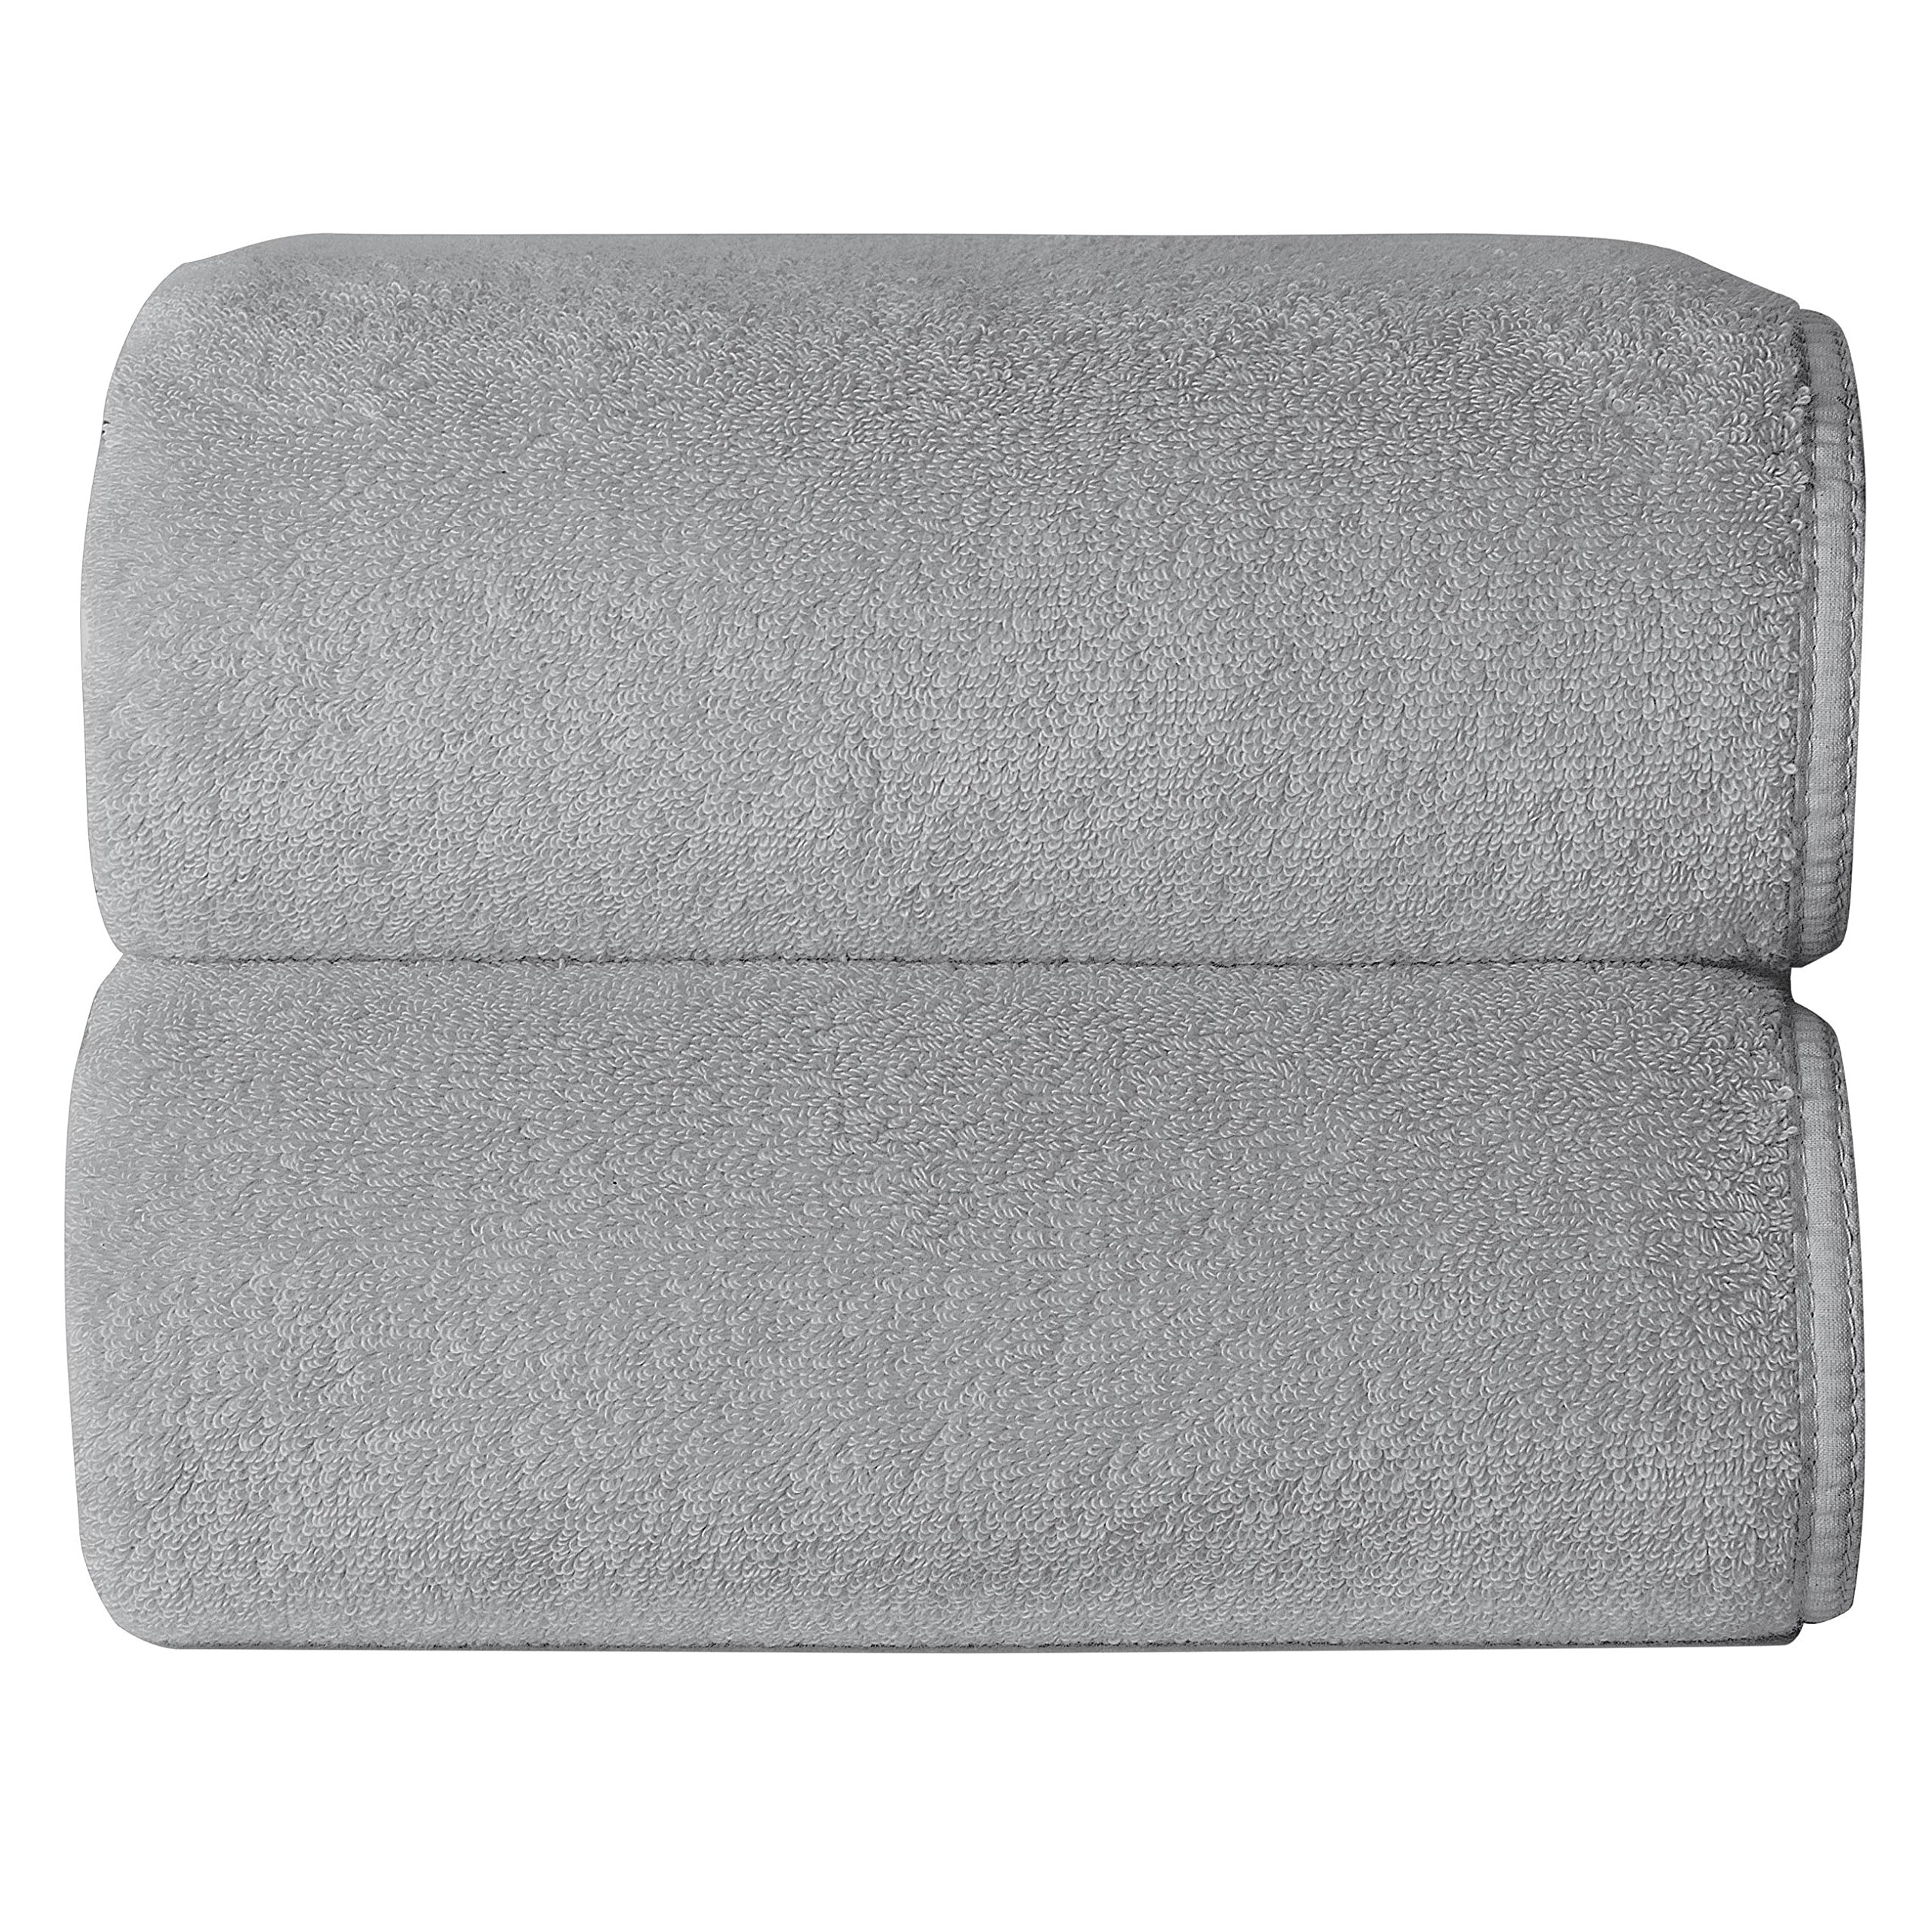 Graccioza Spa Sponge Hand Towels (18'' x 30'') (2-pack) - Silver - Made in Portugal, 650-GSM, Low Twist 100% Superior Combed Cotton Terry